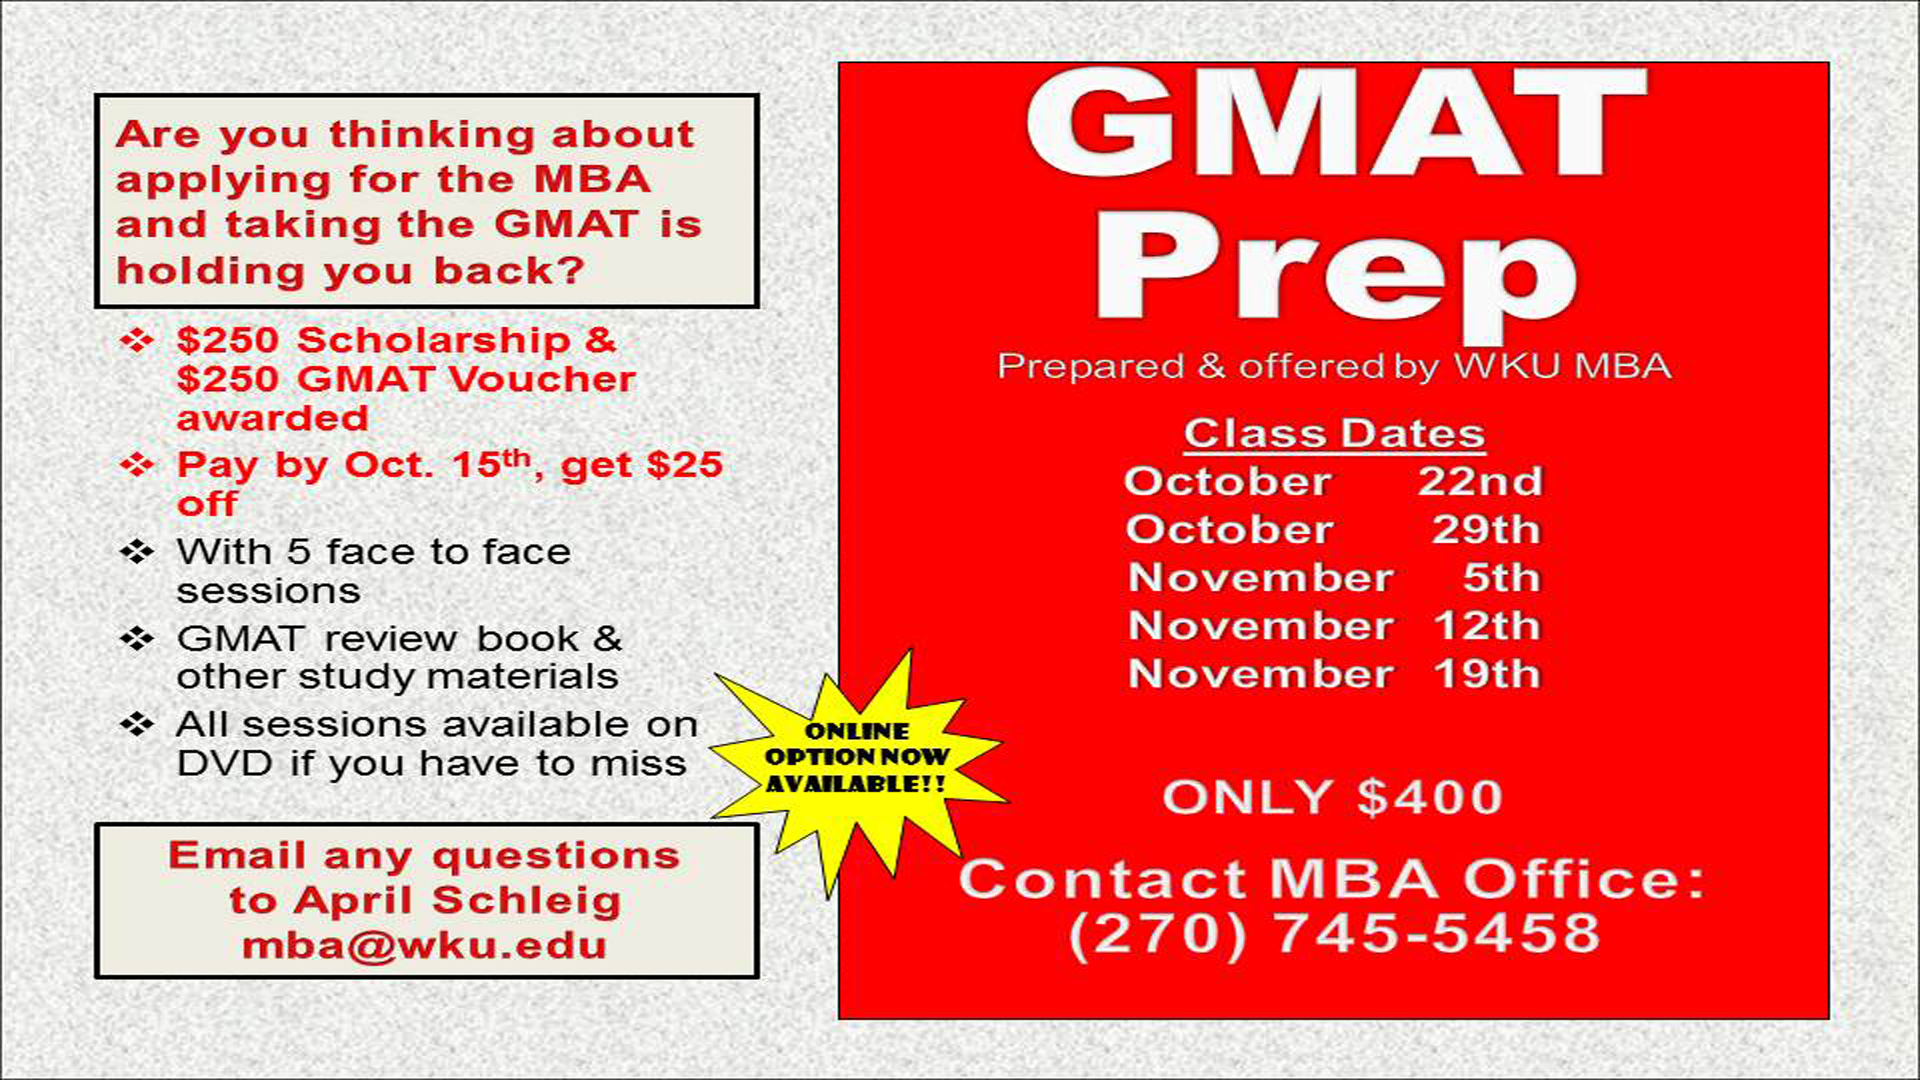 GMAT Career Prep